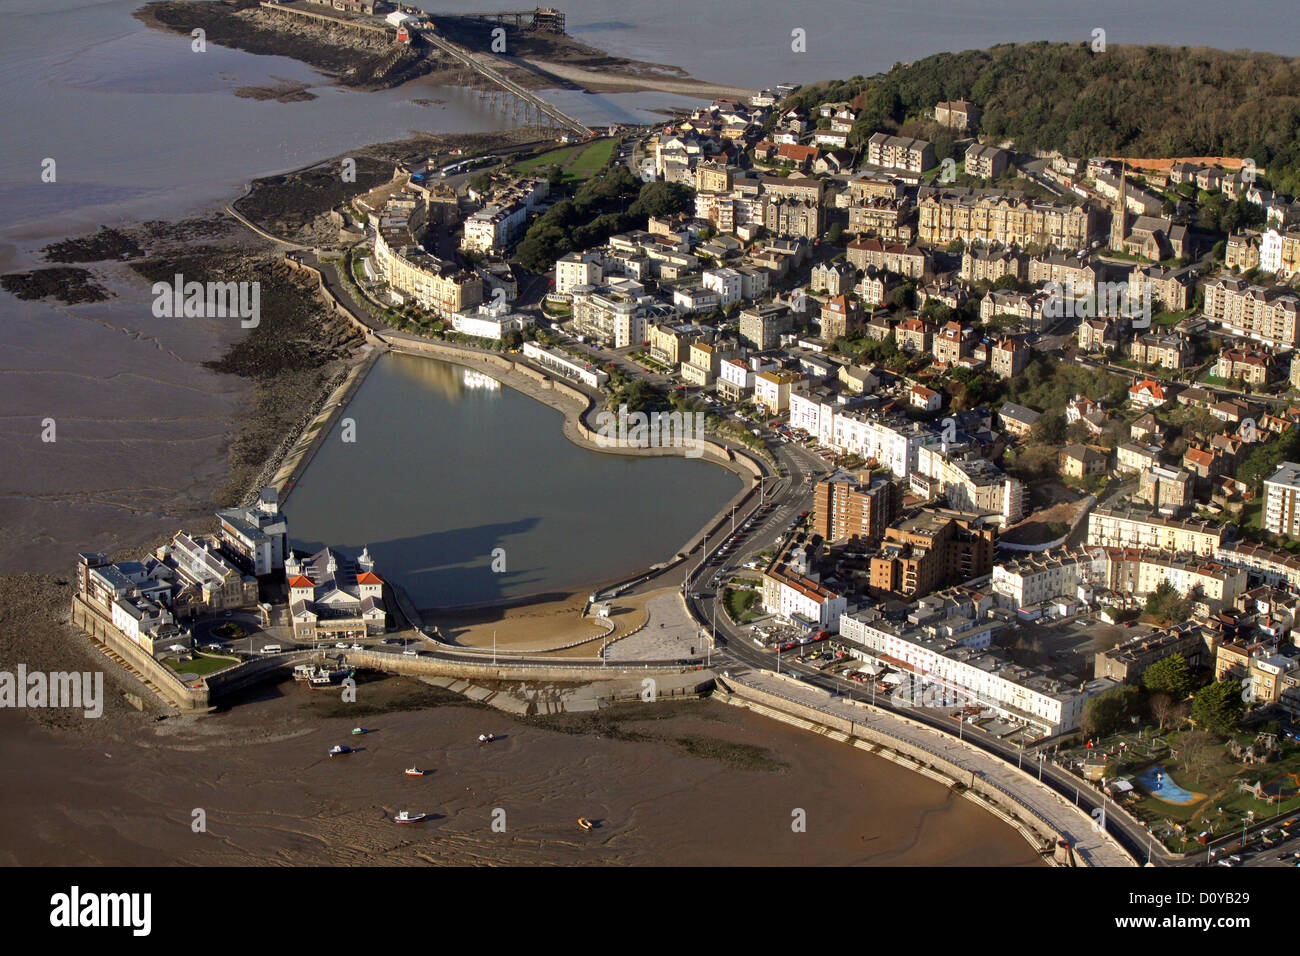 aerial view of the Marine Lake and Weston-super-Mare - Stock Image